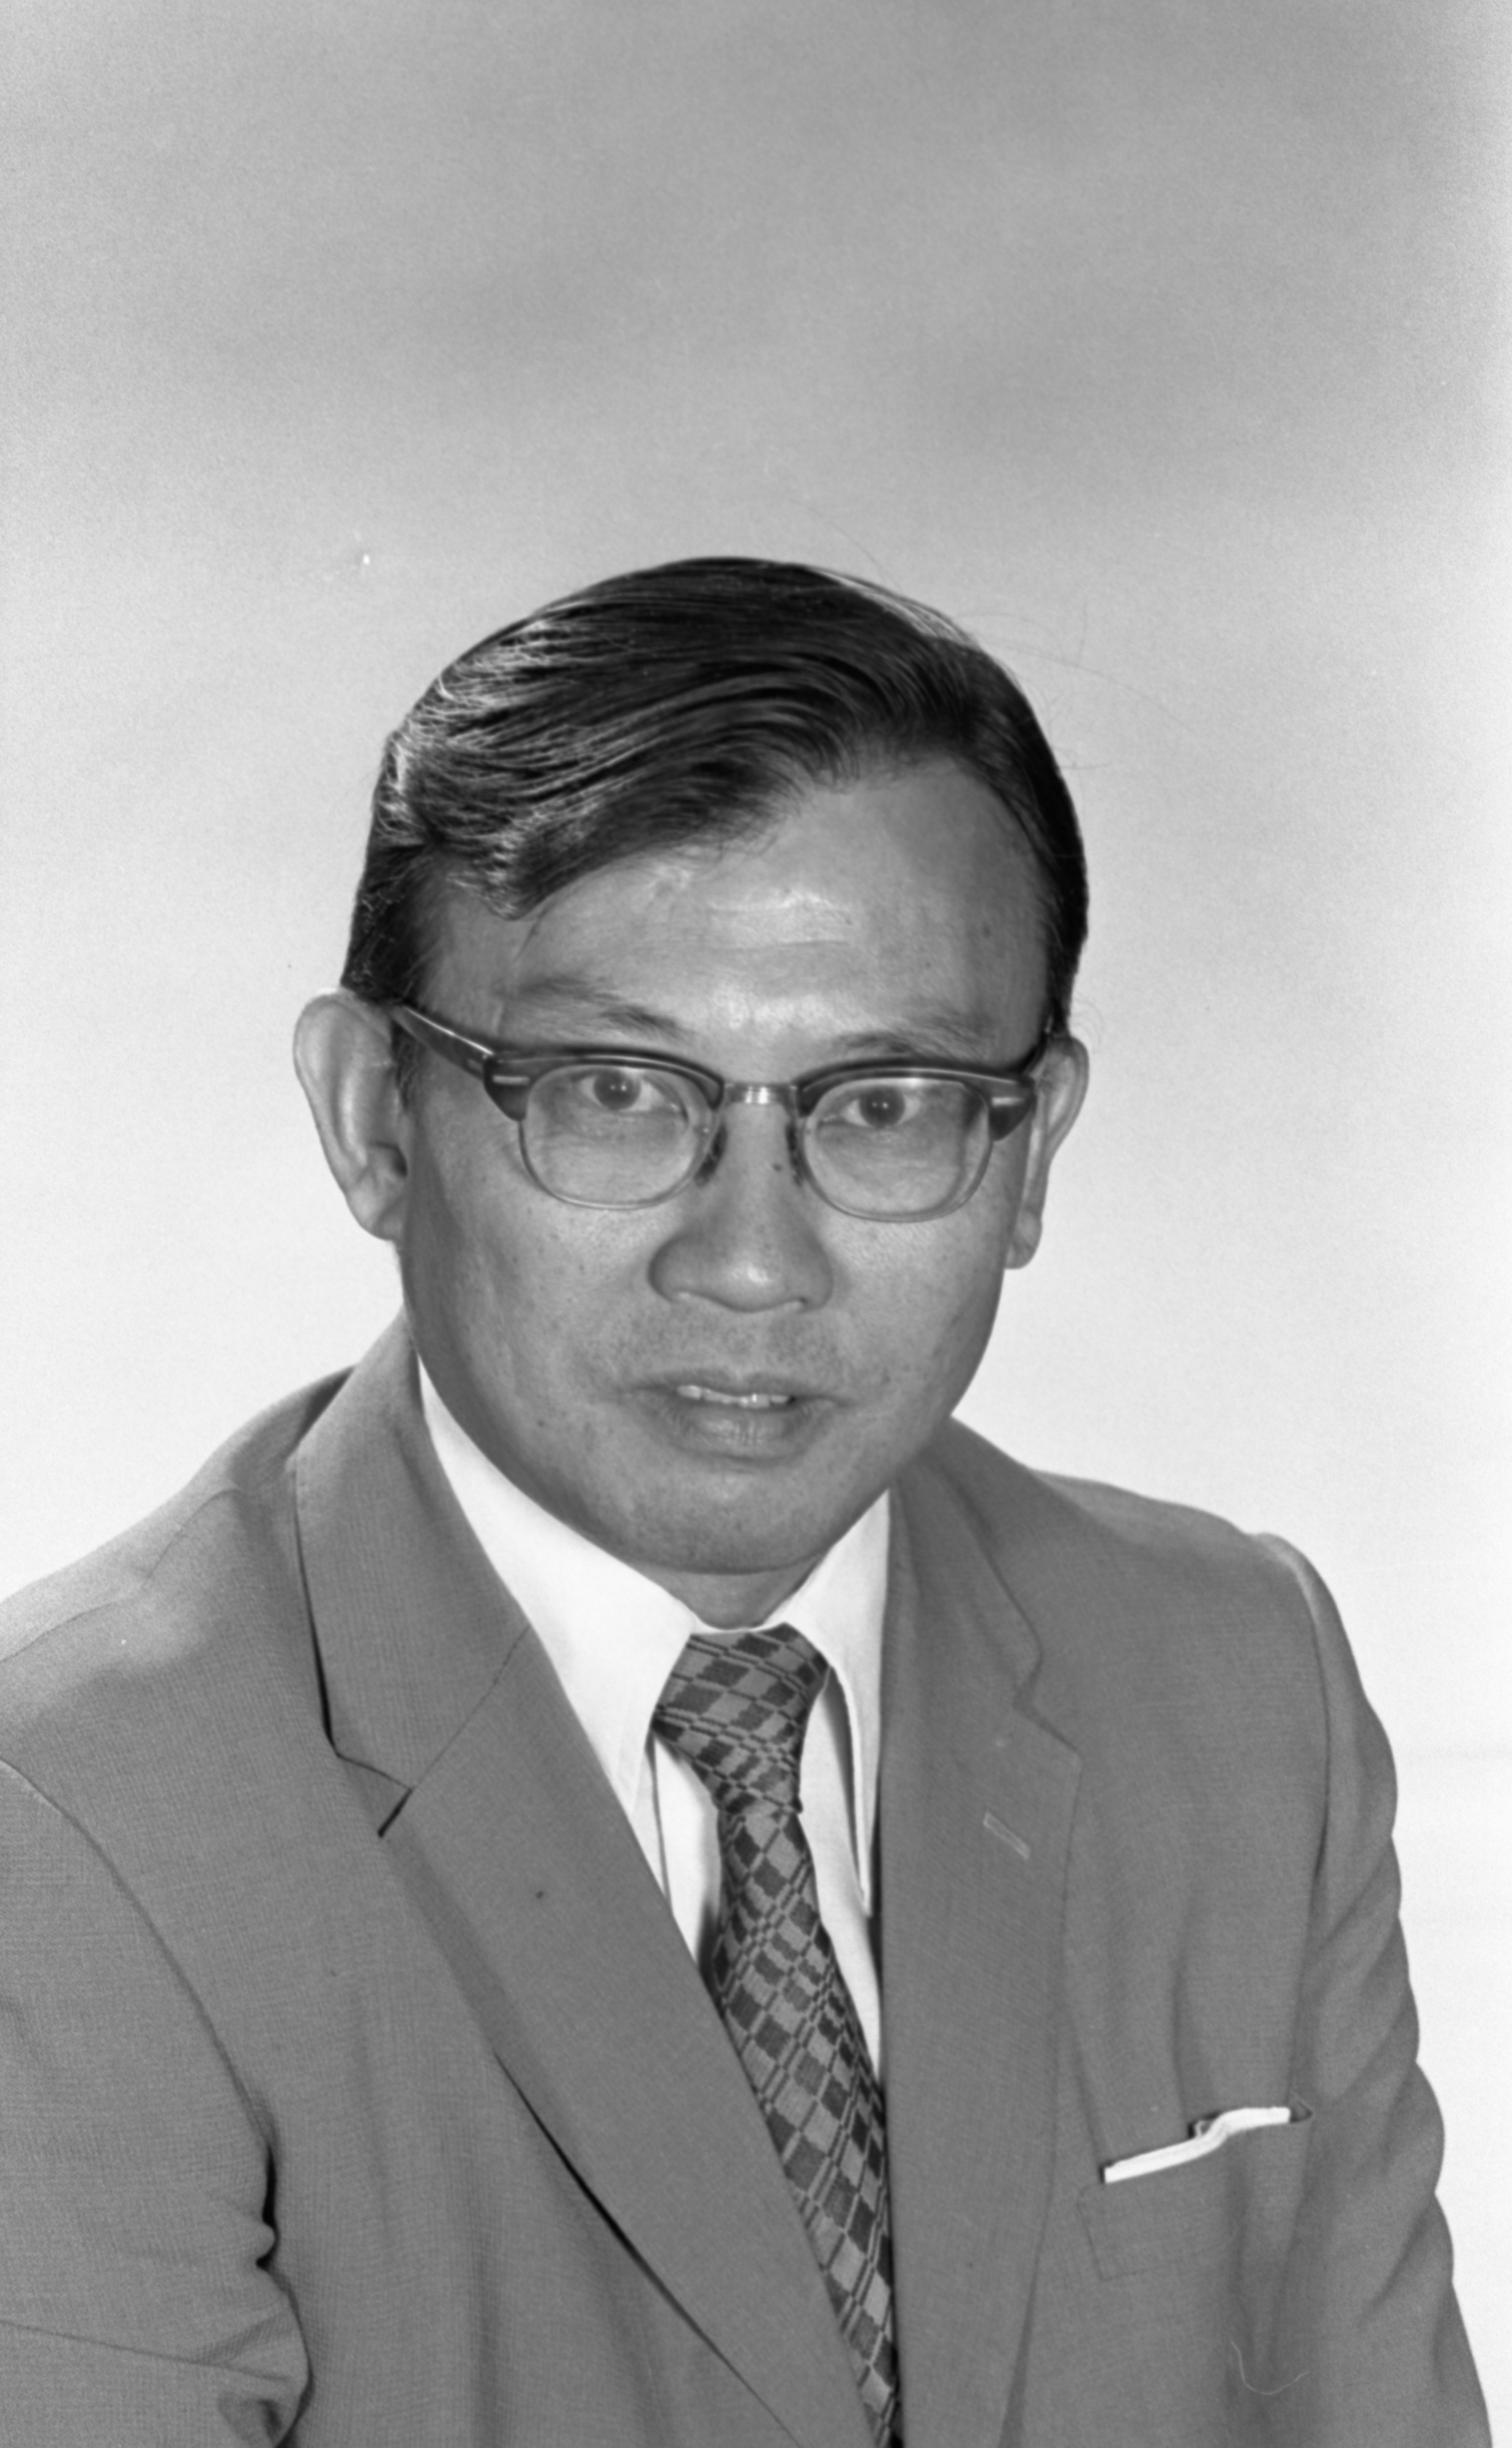 Stephen C. Y. Liu - Ann Arbor Board Of Education Candidate, June 1976 image